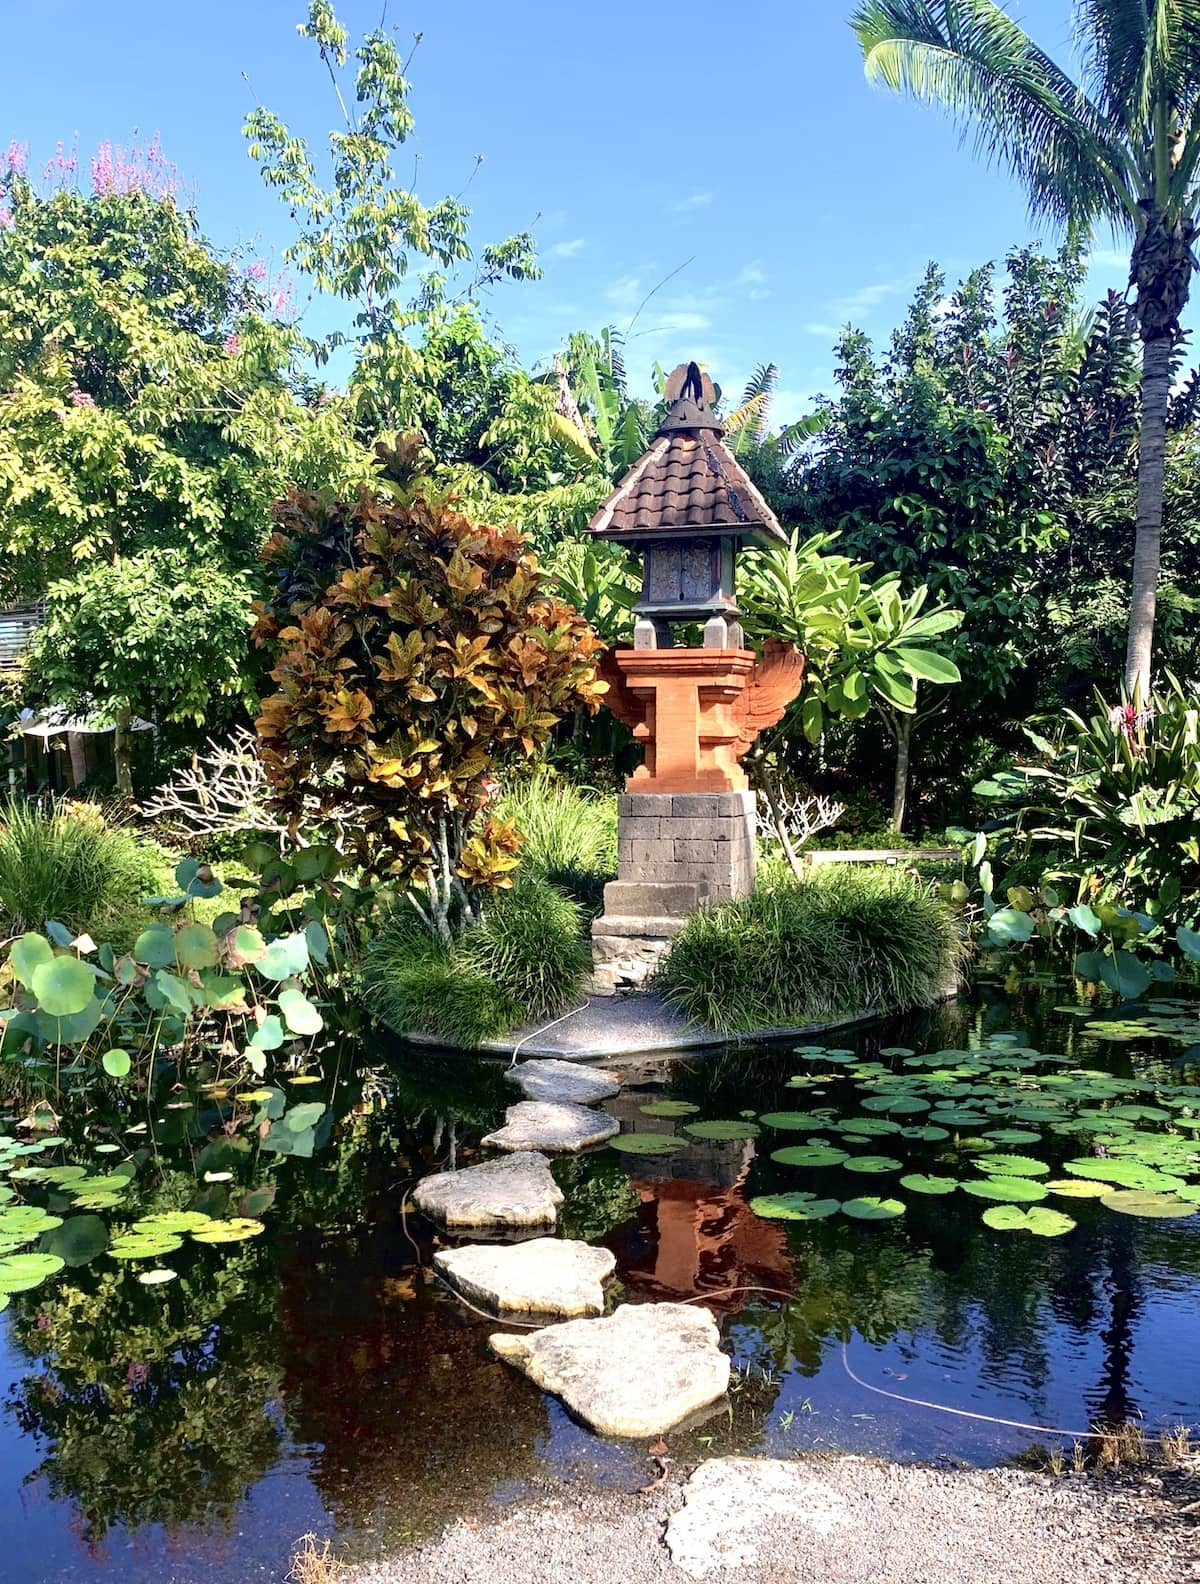 Naples Botanical Gardens is one of my favorite things to do in Naples.